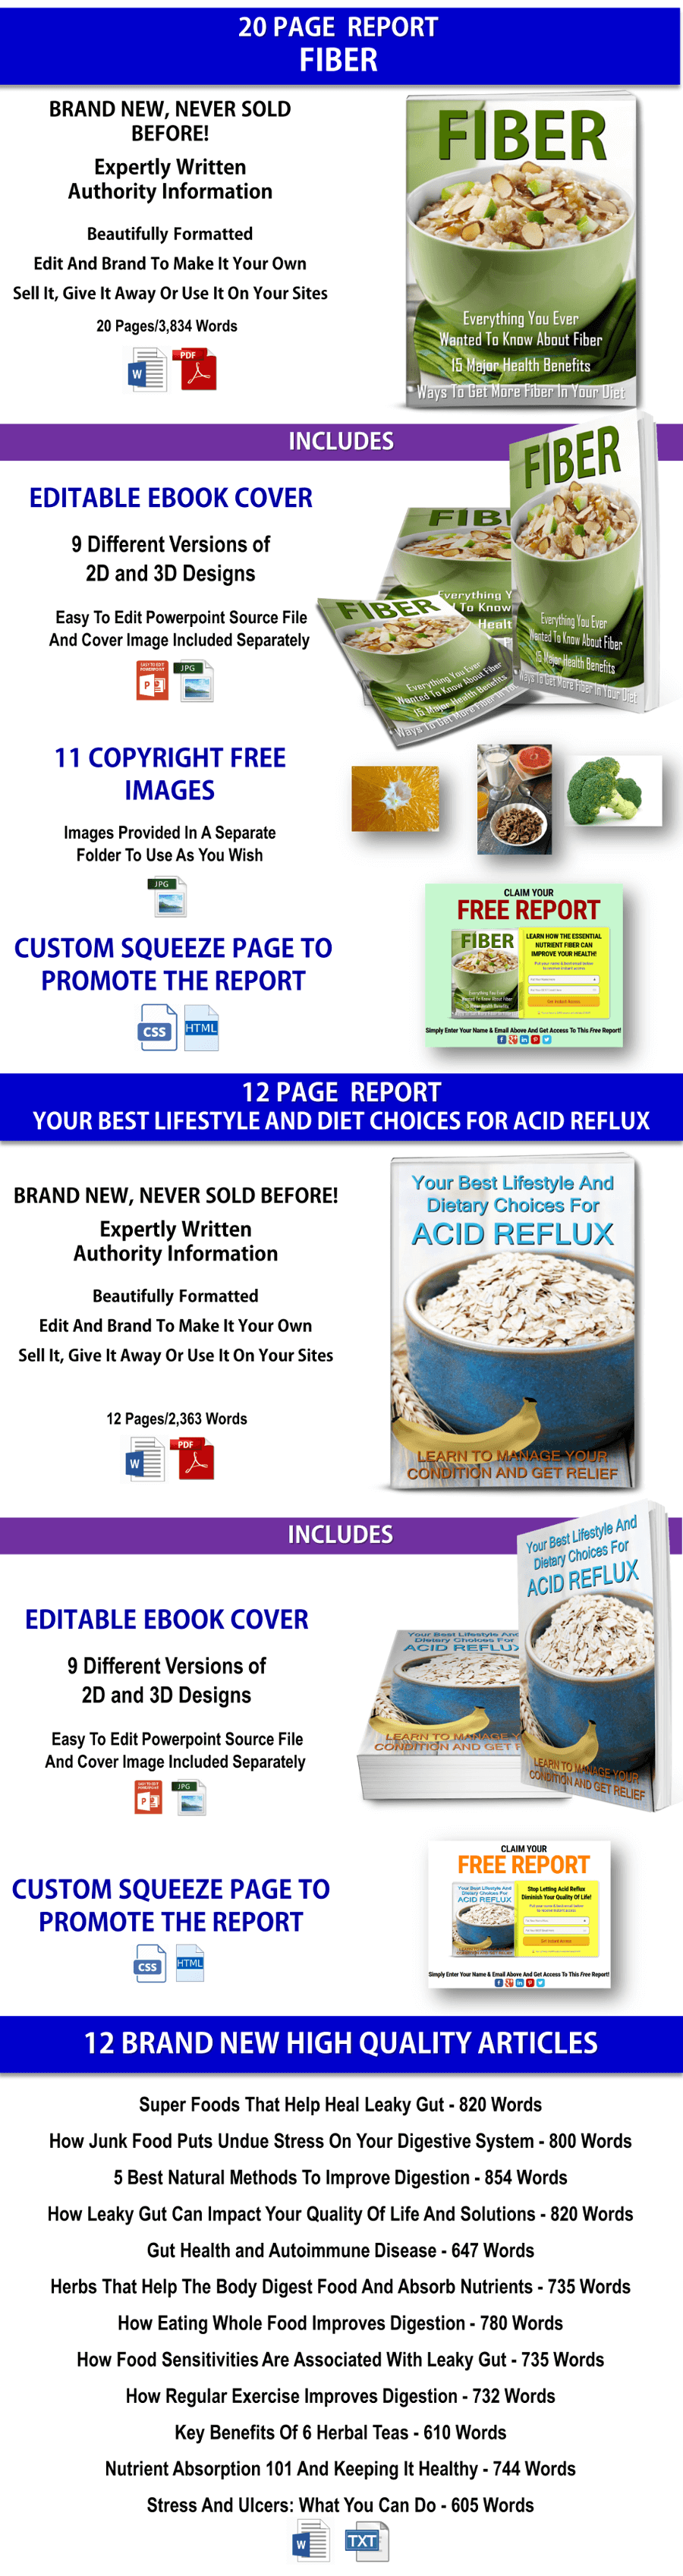 Fiber For Health, Acid Reflux Report, Digestive Health Articles PLR